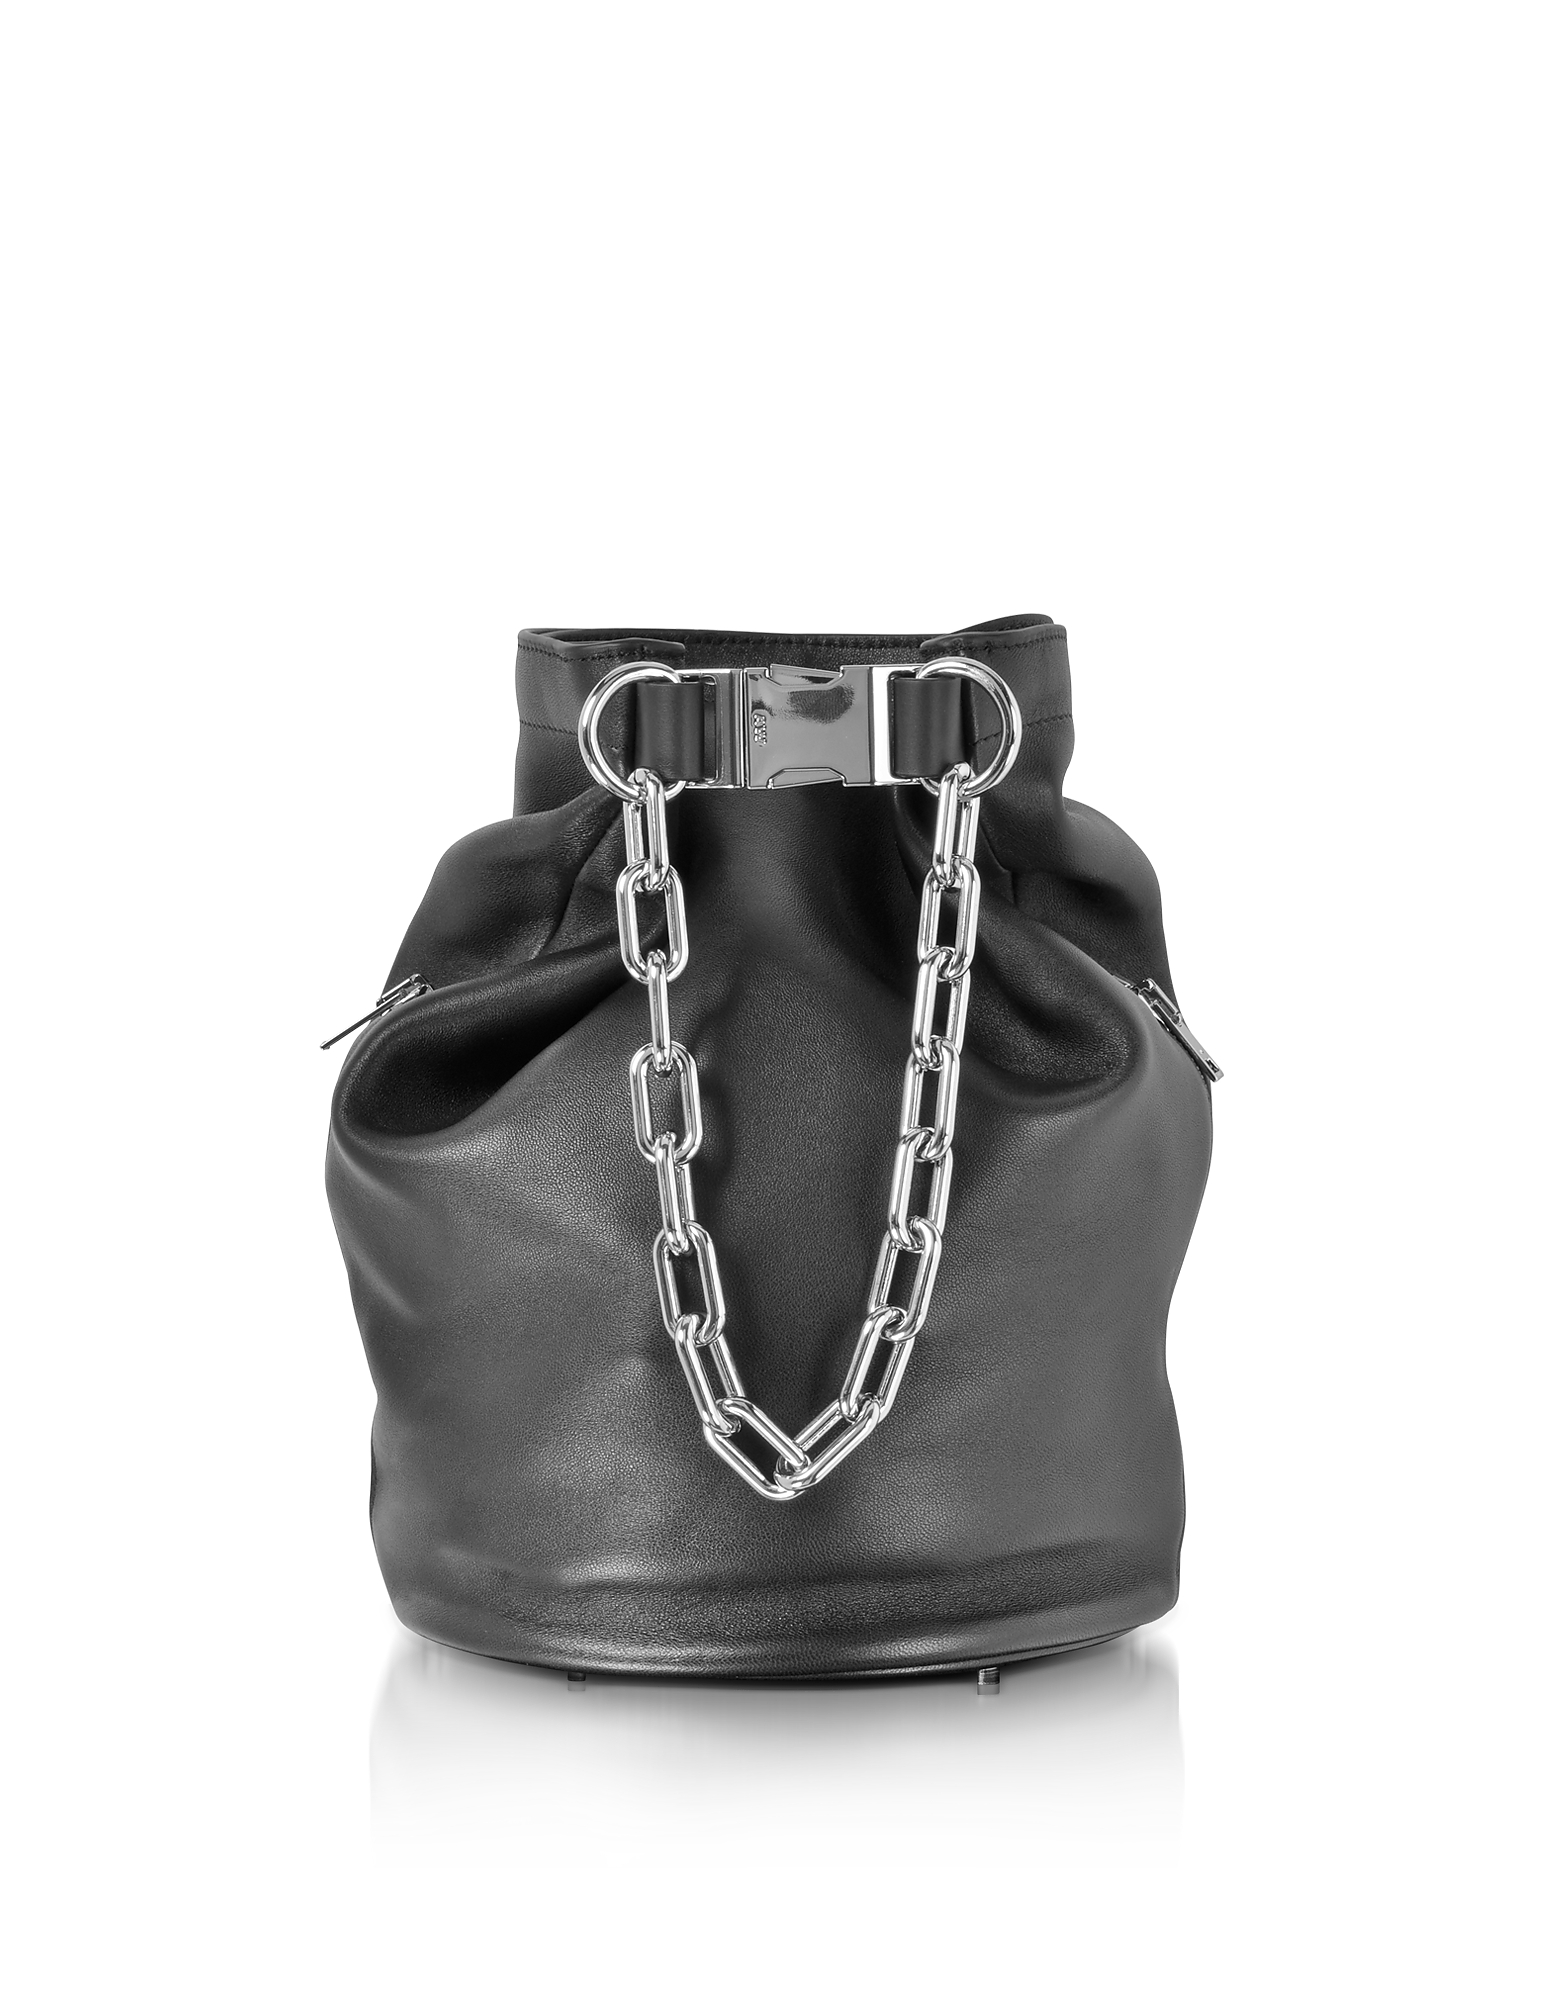 Alexander Wang Handbags, Black Nappa Leather Attica Soft Dry Sack